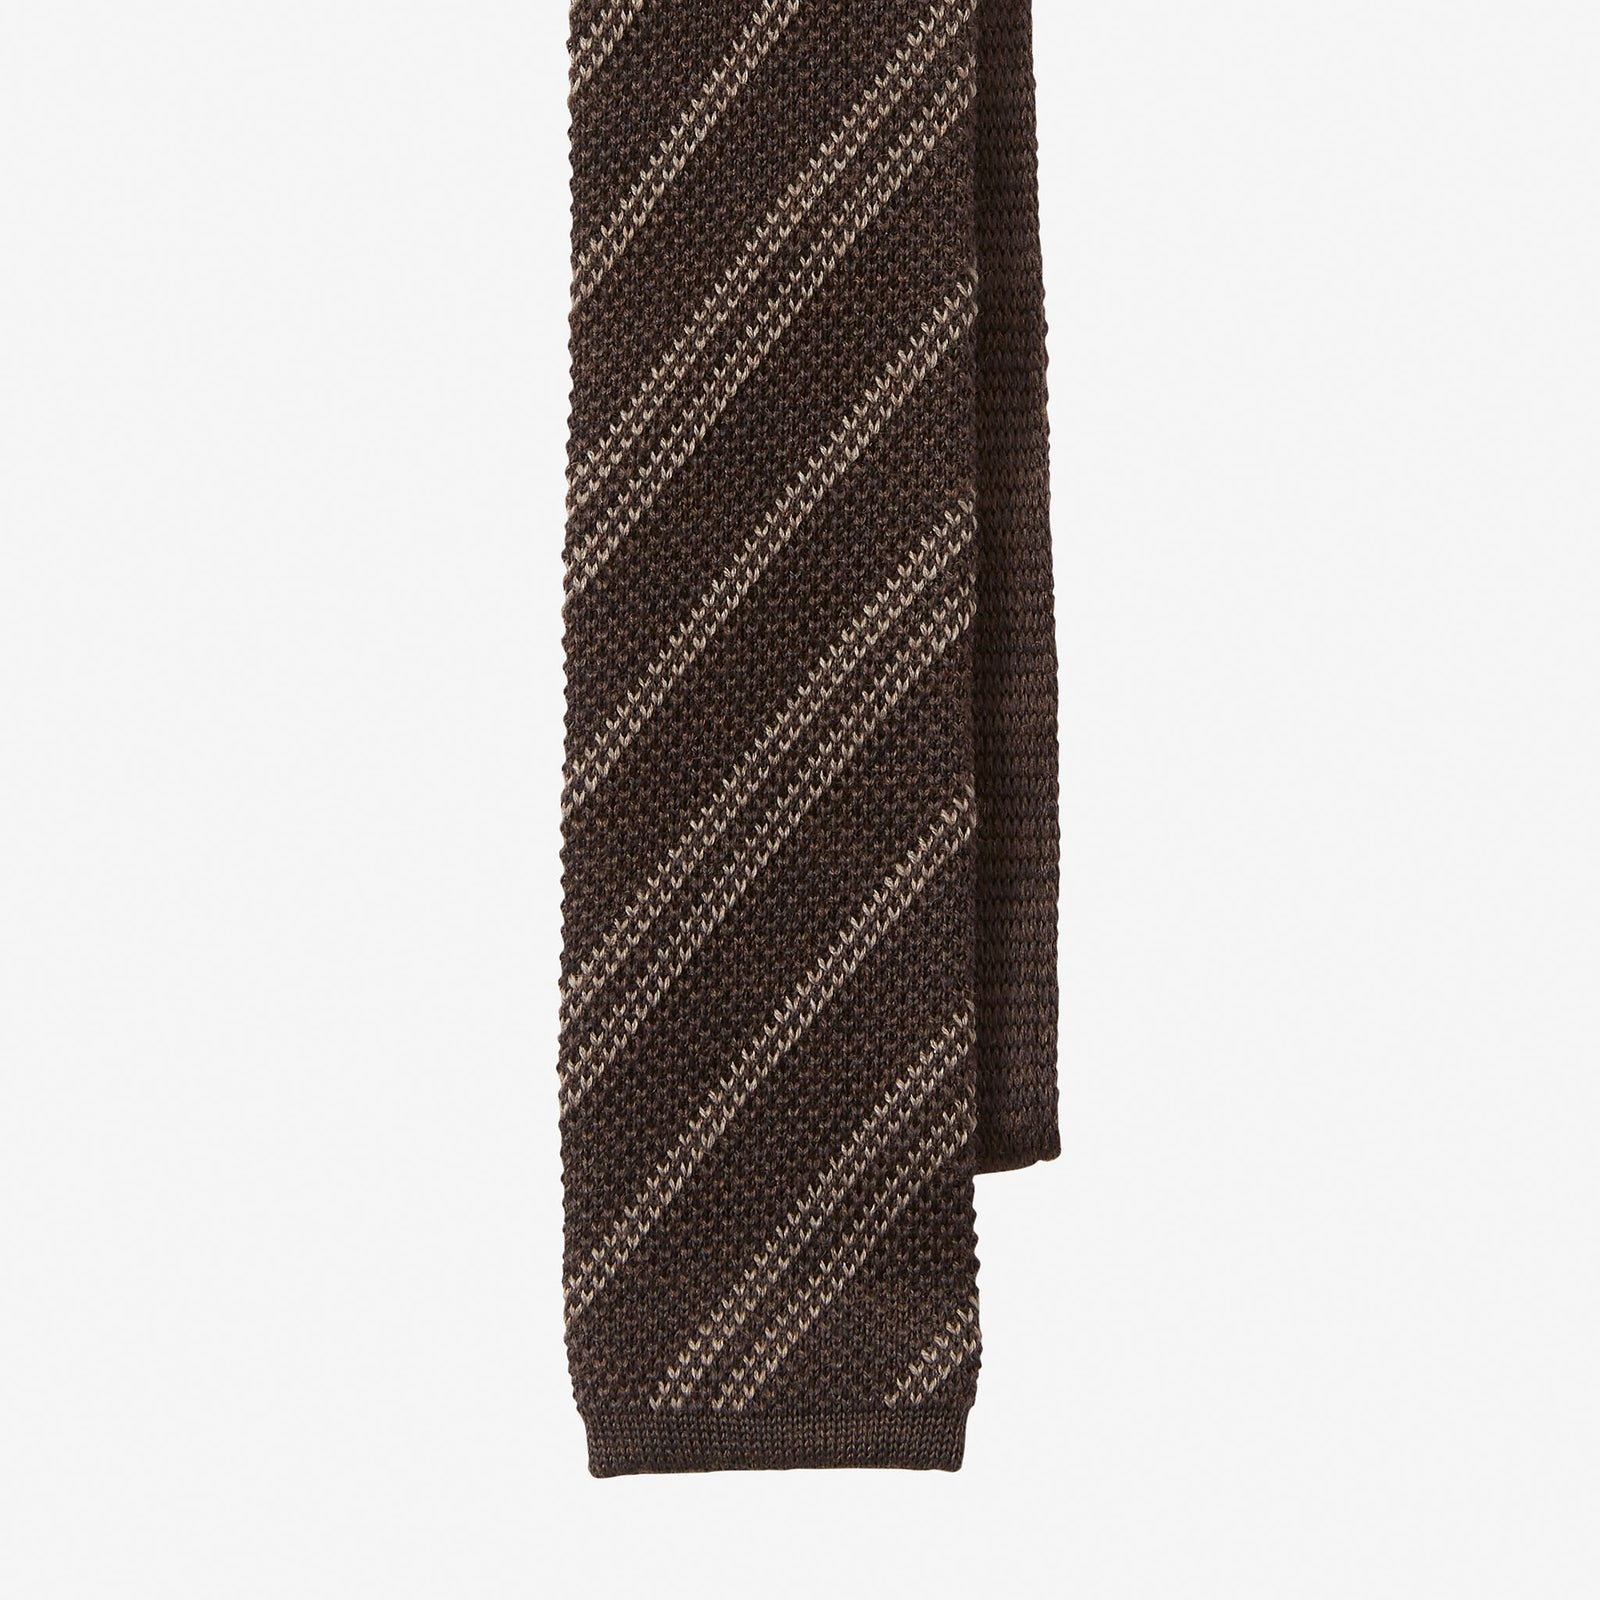 Knit Tie Wool Stripe Brown Taupe